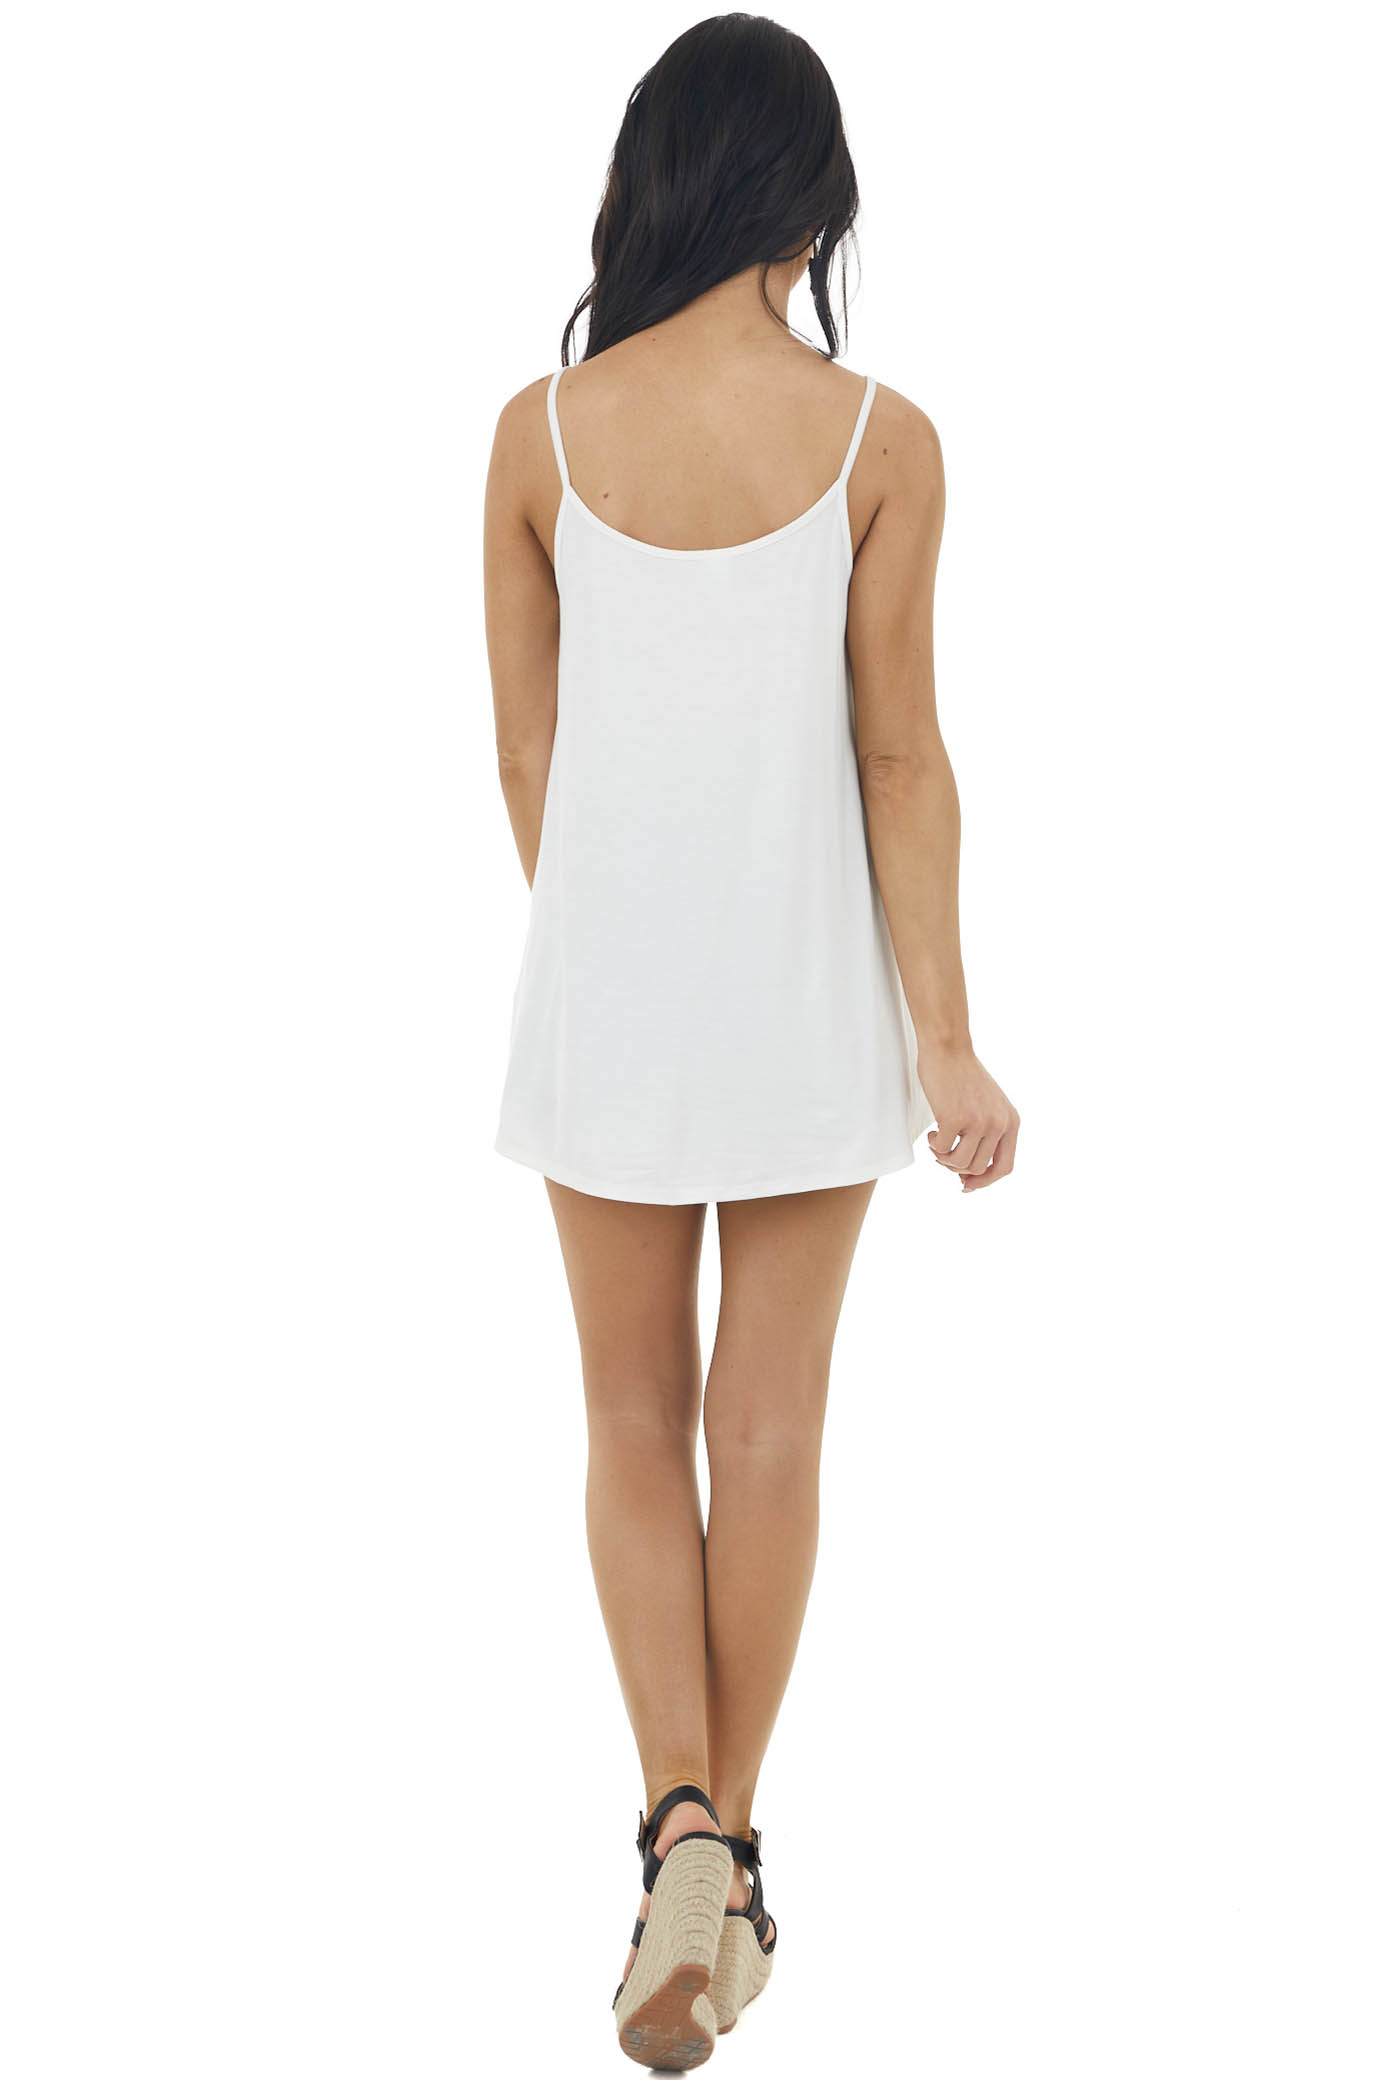 Pearl Colorblock Caged Neckline Tank Top with Front Tie